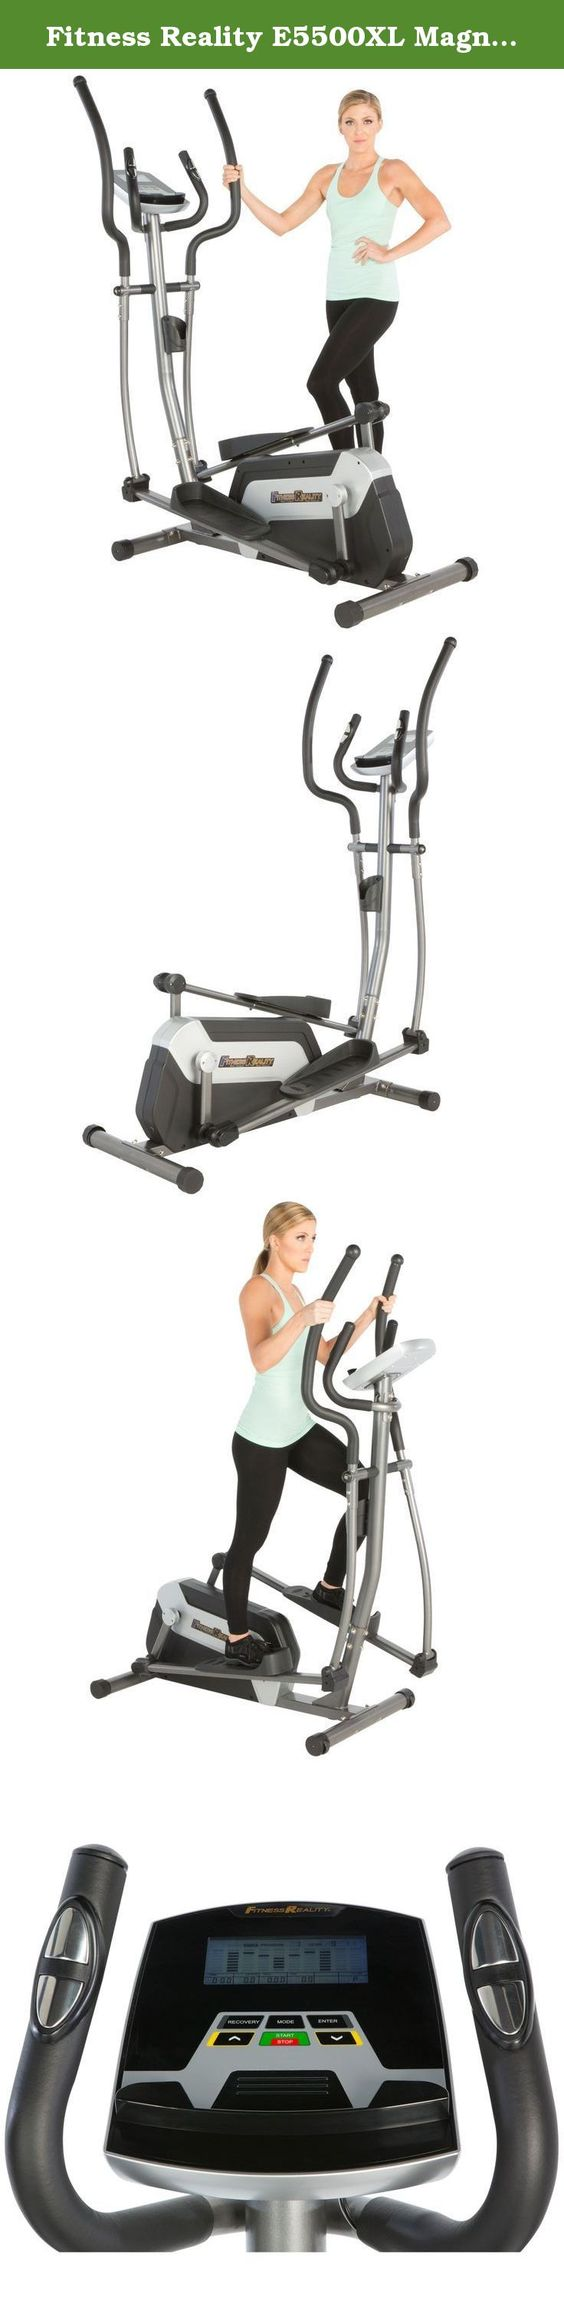 """Fitness Reality E5500XL Magnetic Elliptical Trainer with Comfortable 18"""" Stride. FITNESS REALITY. Real People. Real Results! The Fitness Reality E5500XL Elliptical gives you all the workout programs you need, to track your results. The smooth 18"""" stride, 24 levels of resistance and the smart target control computer will give you any exercise challenge you want. Heart pulse sensors will target your heart rate zone and the E5500 is designed to be much more compact than other elliptical..."""